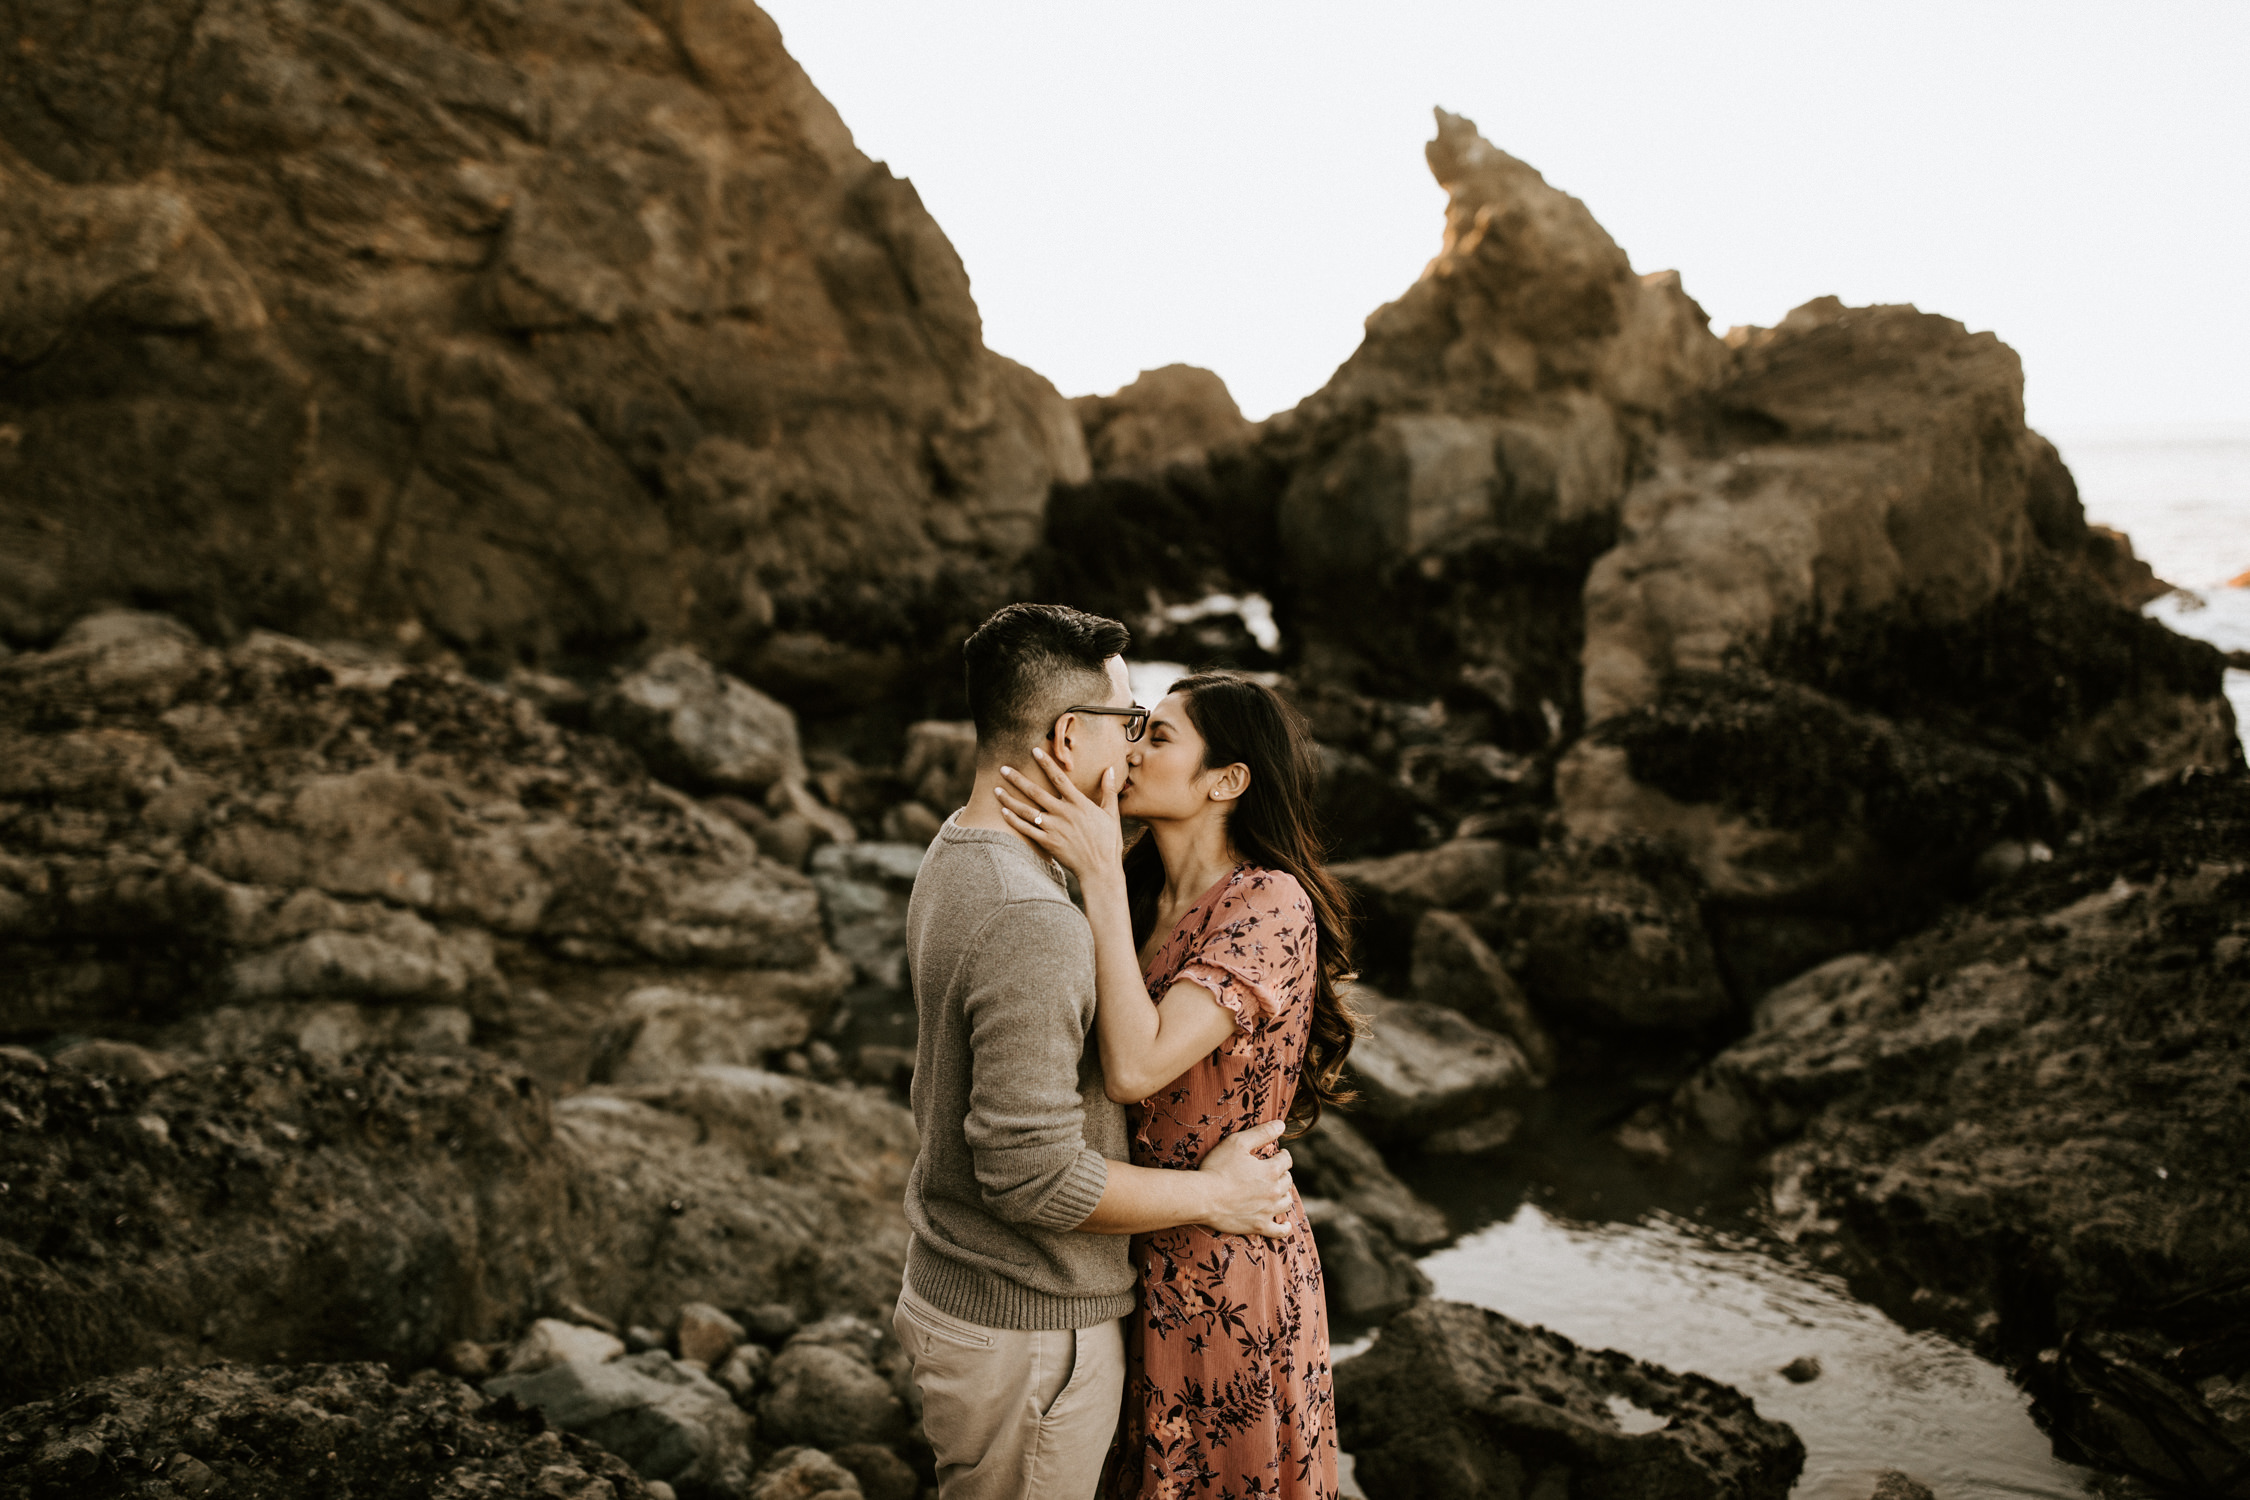 couple-intimate-engagement-session-northern-california-57.jpg